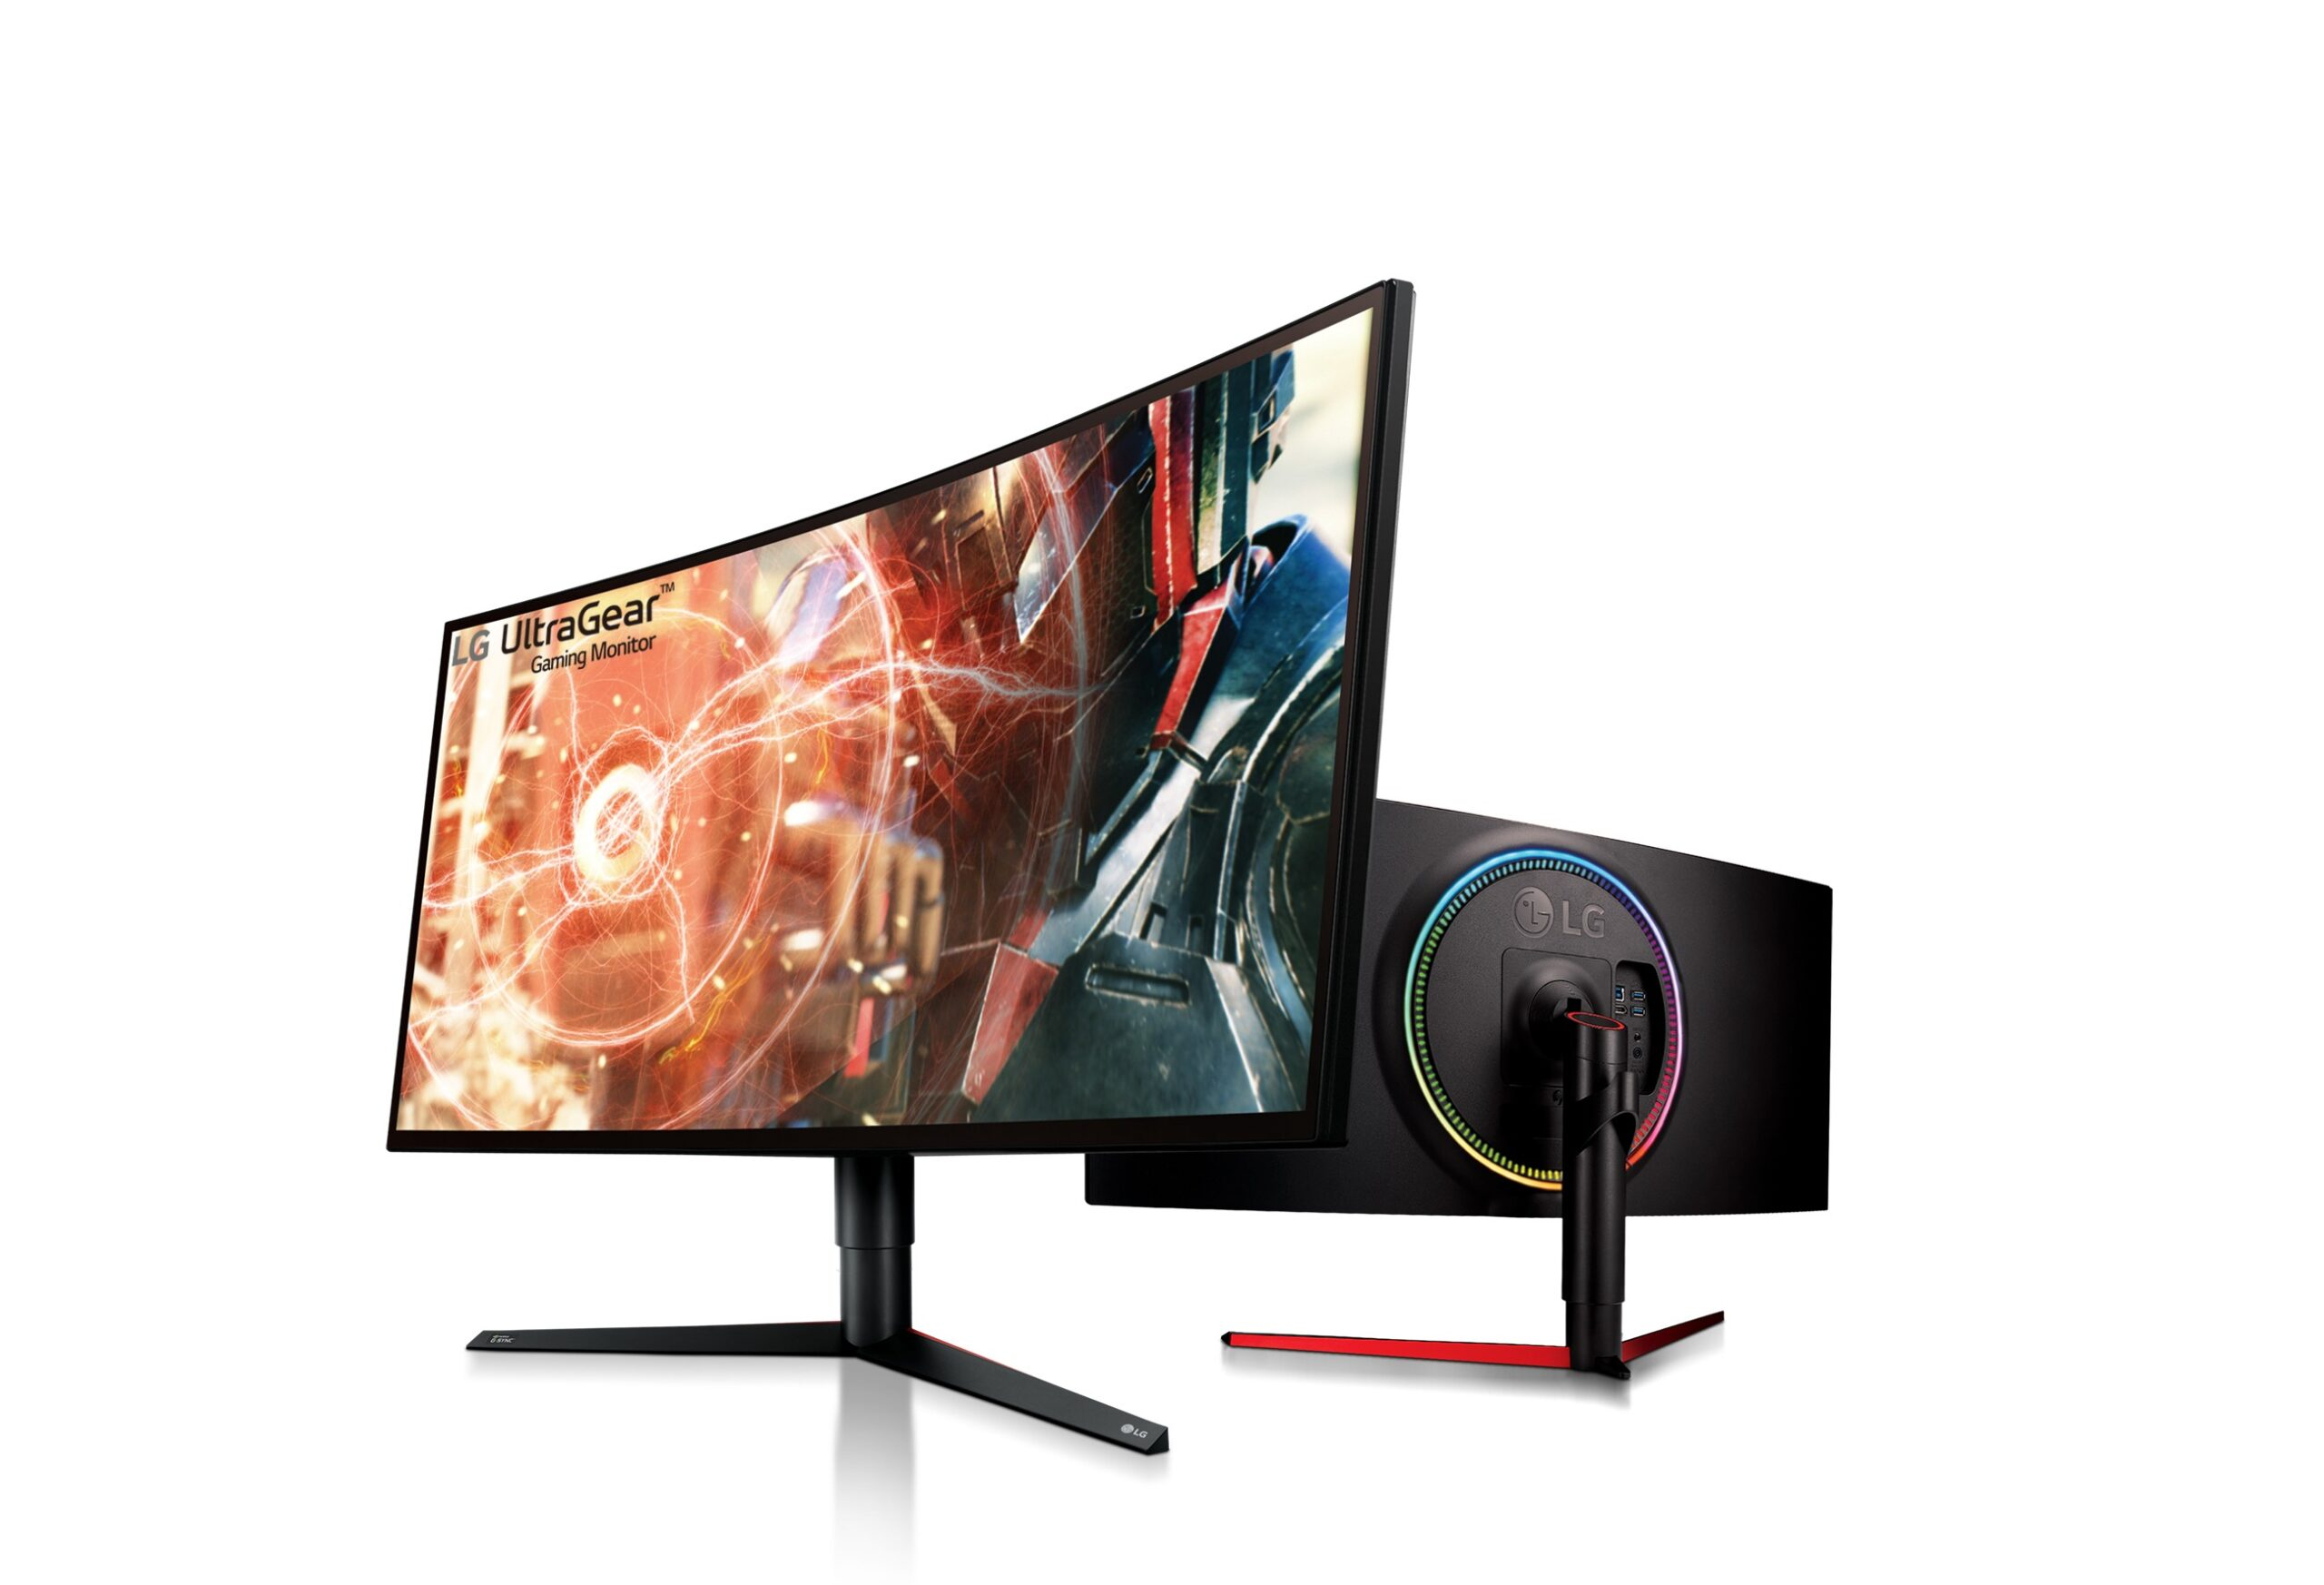 A right-side and rear view of LG UltraGear Gaming Monitor